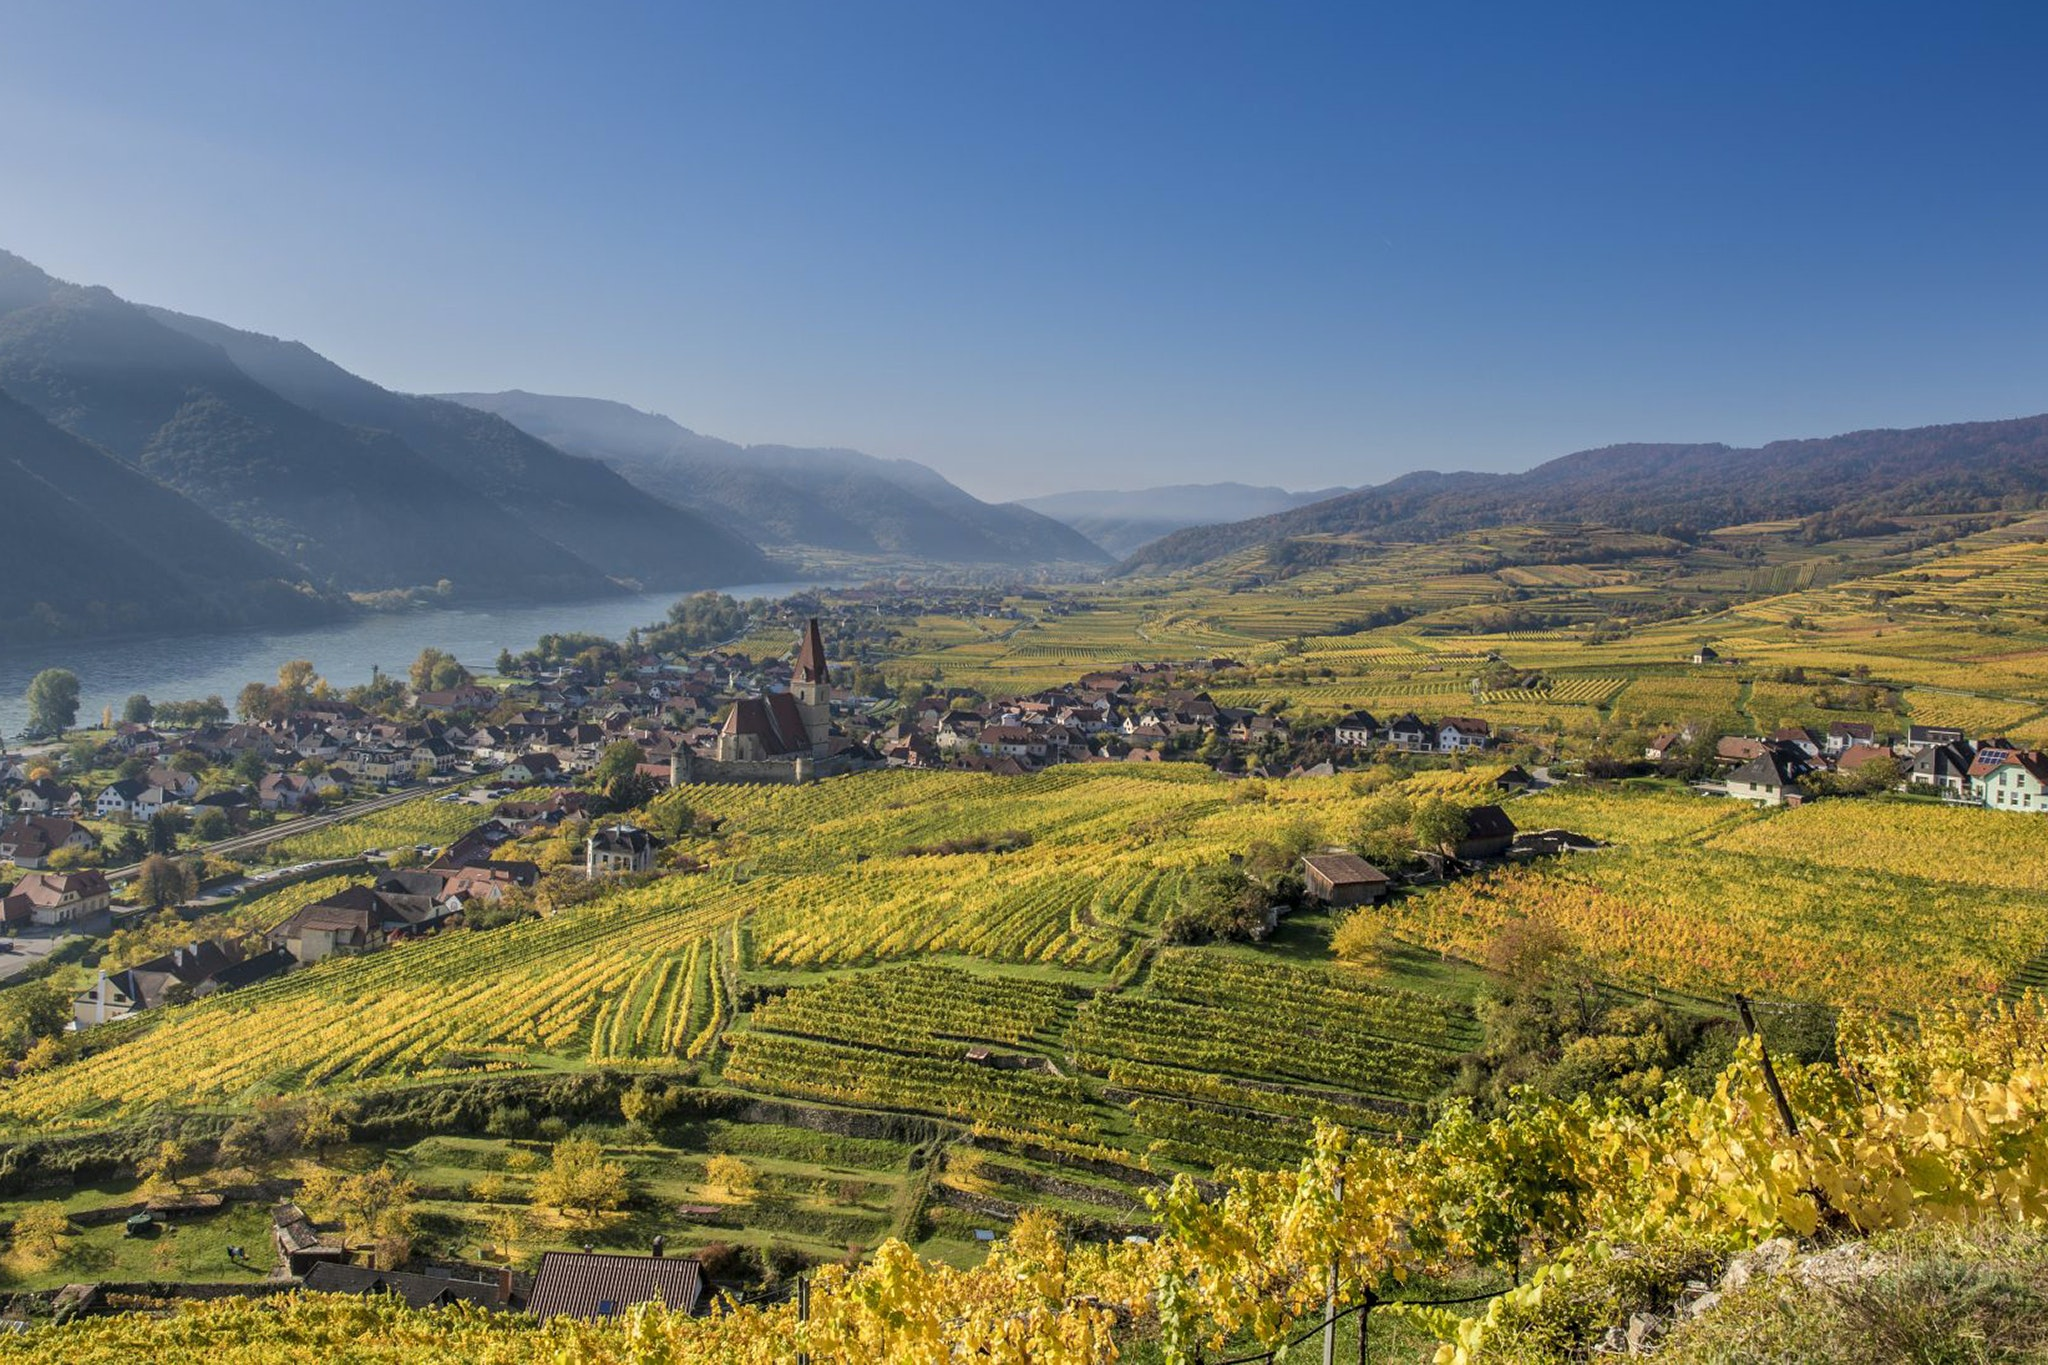 Weingut Rudi Pichler cultivates 37 acres of vineyard in the UNESCO-listed Wachau Valley.